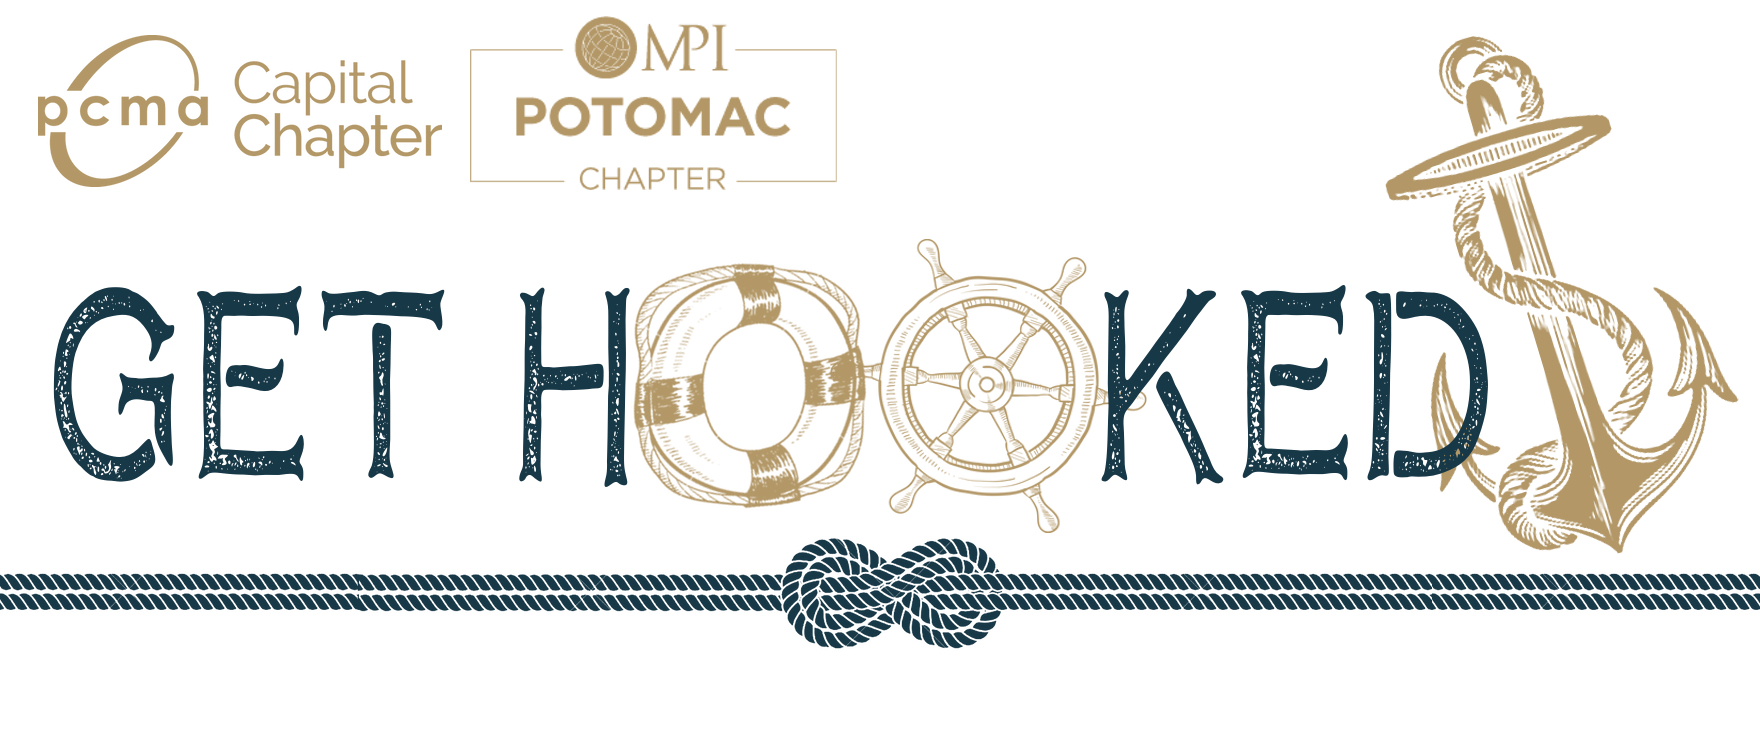 PCMA Capital Chapter/MPI Potomac Get Hooked Fall Networking Event